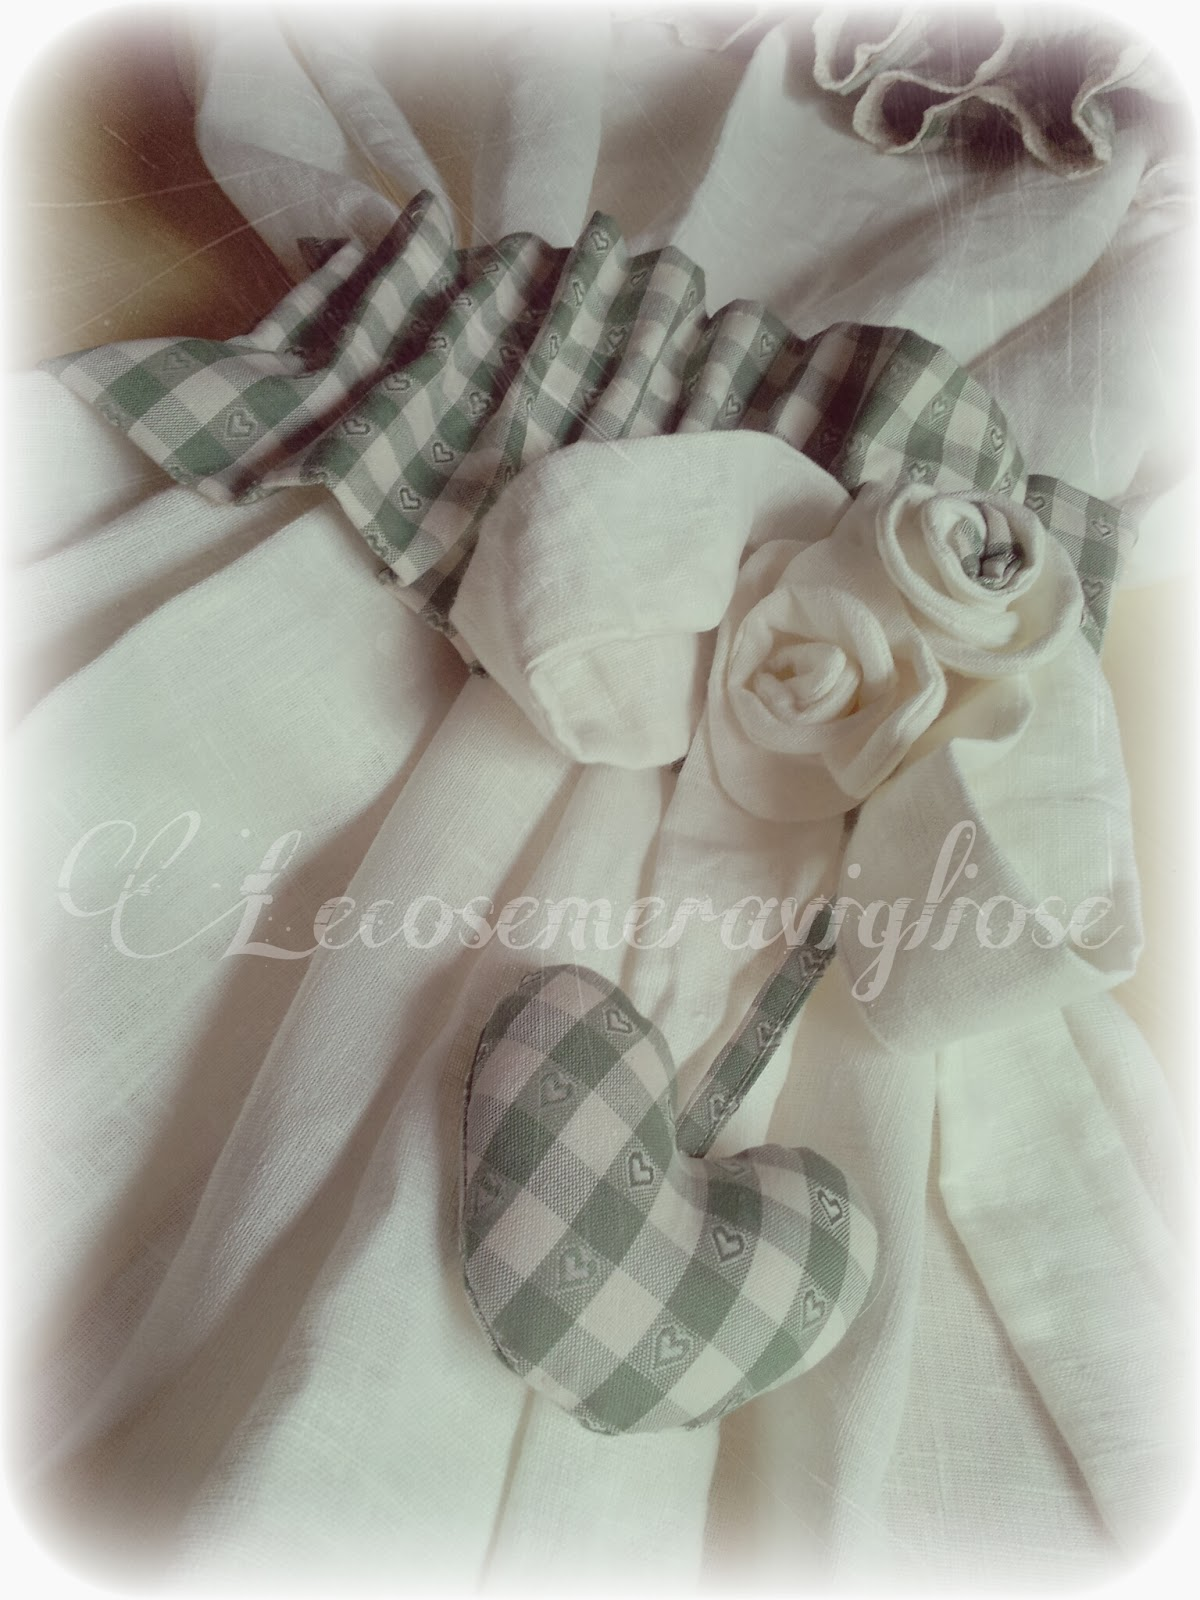 Lecosemeravigliose shabby e country chic passions: tende,cuscini ...